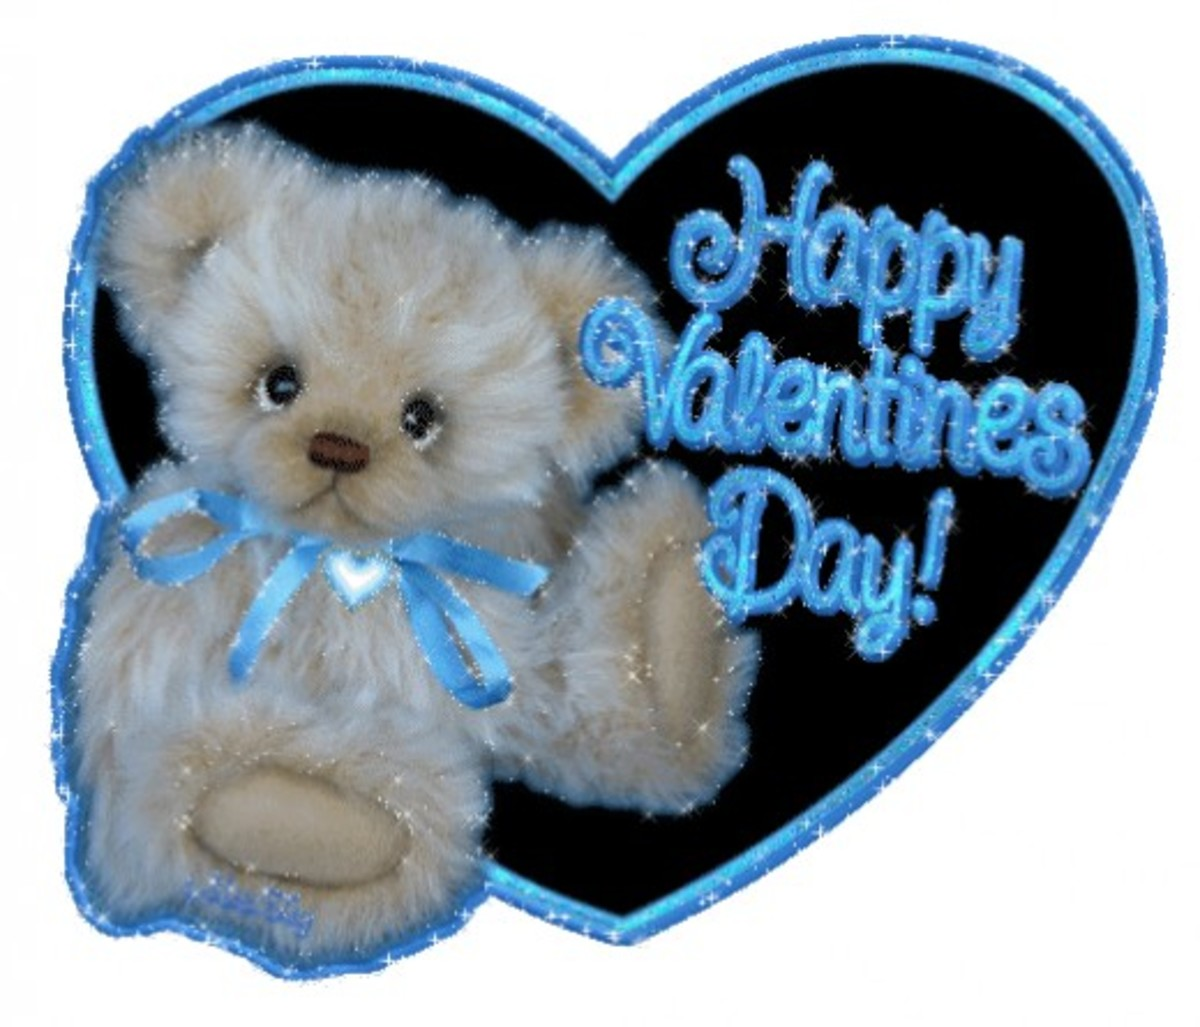 White Teddy Bear with Happy Valentine's Day